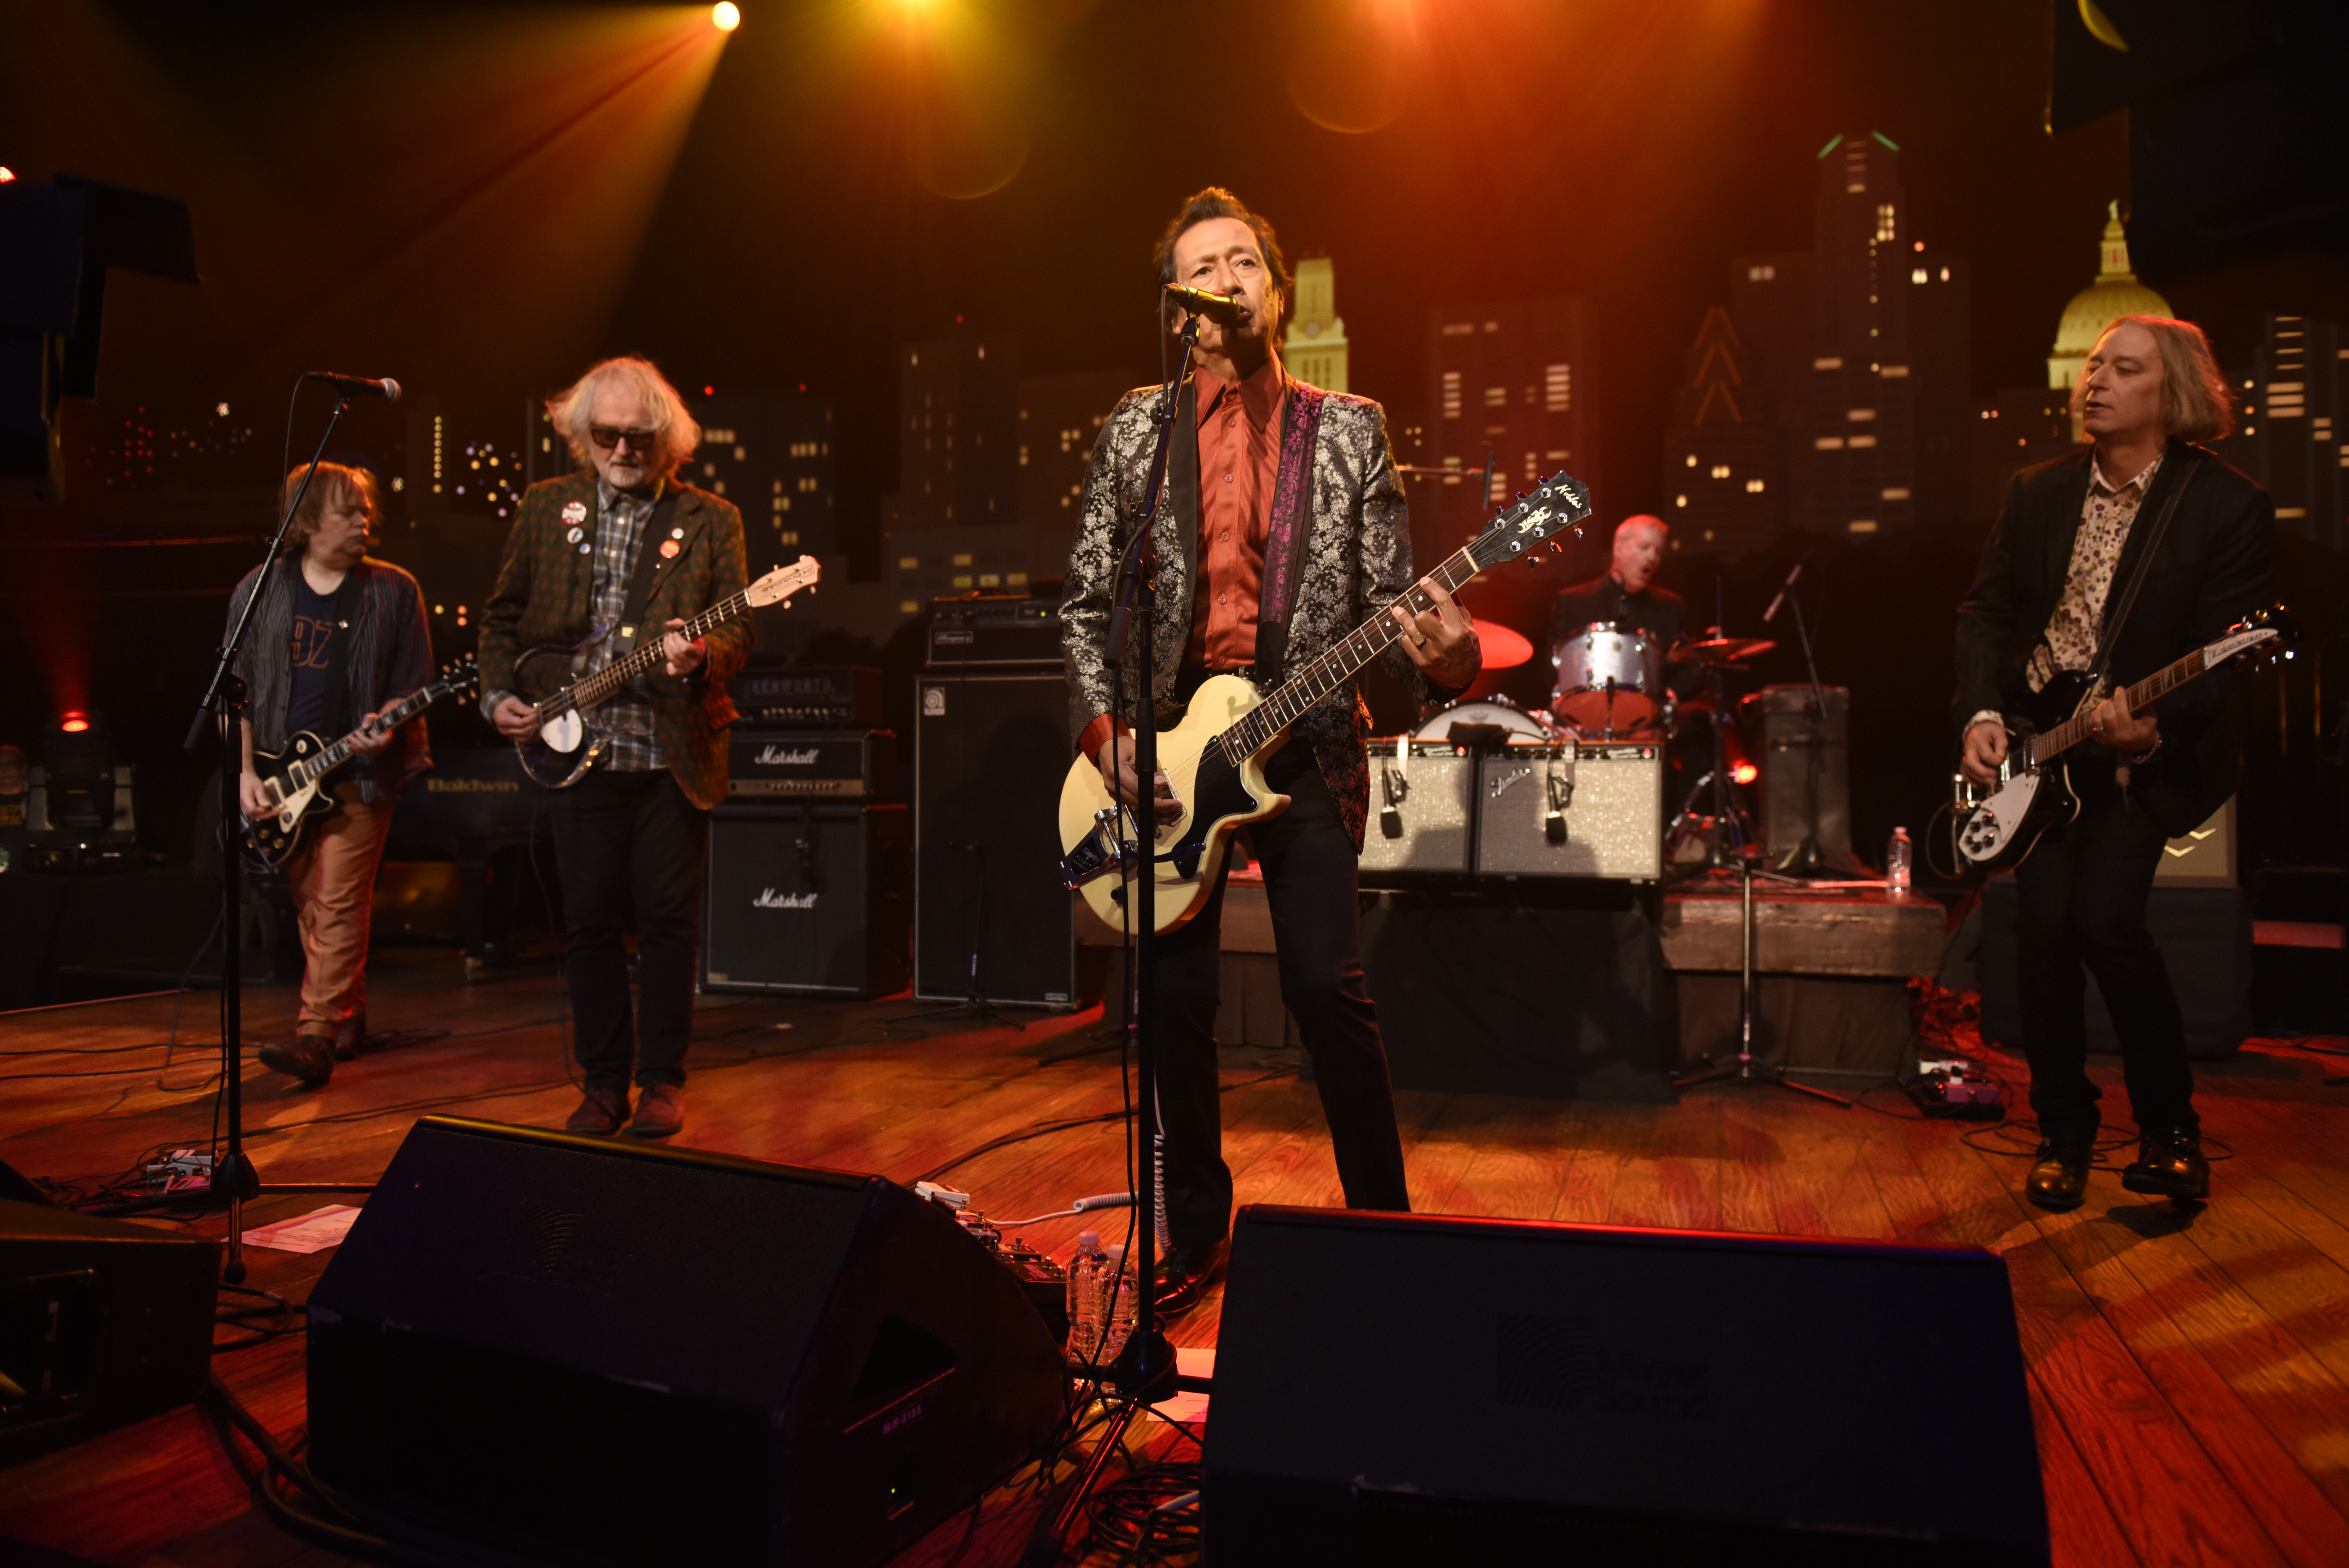 Nhan Song and Nao Song Festival The Northwest, Alejandro Escovedo rocks his 'ACL' taping with a special band ...